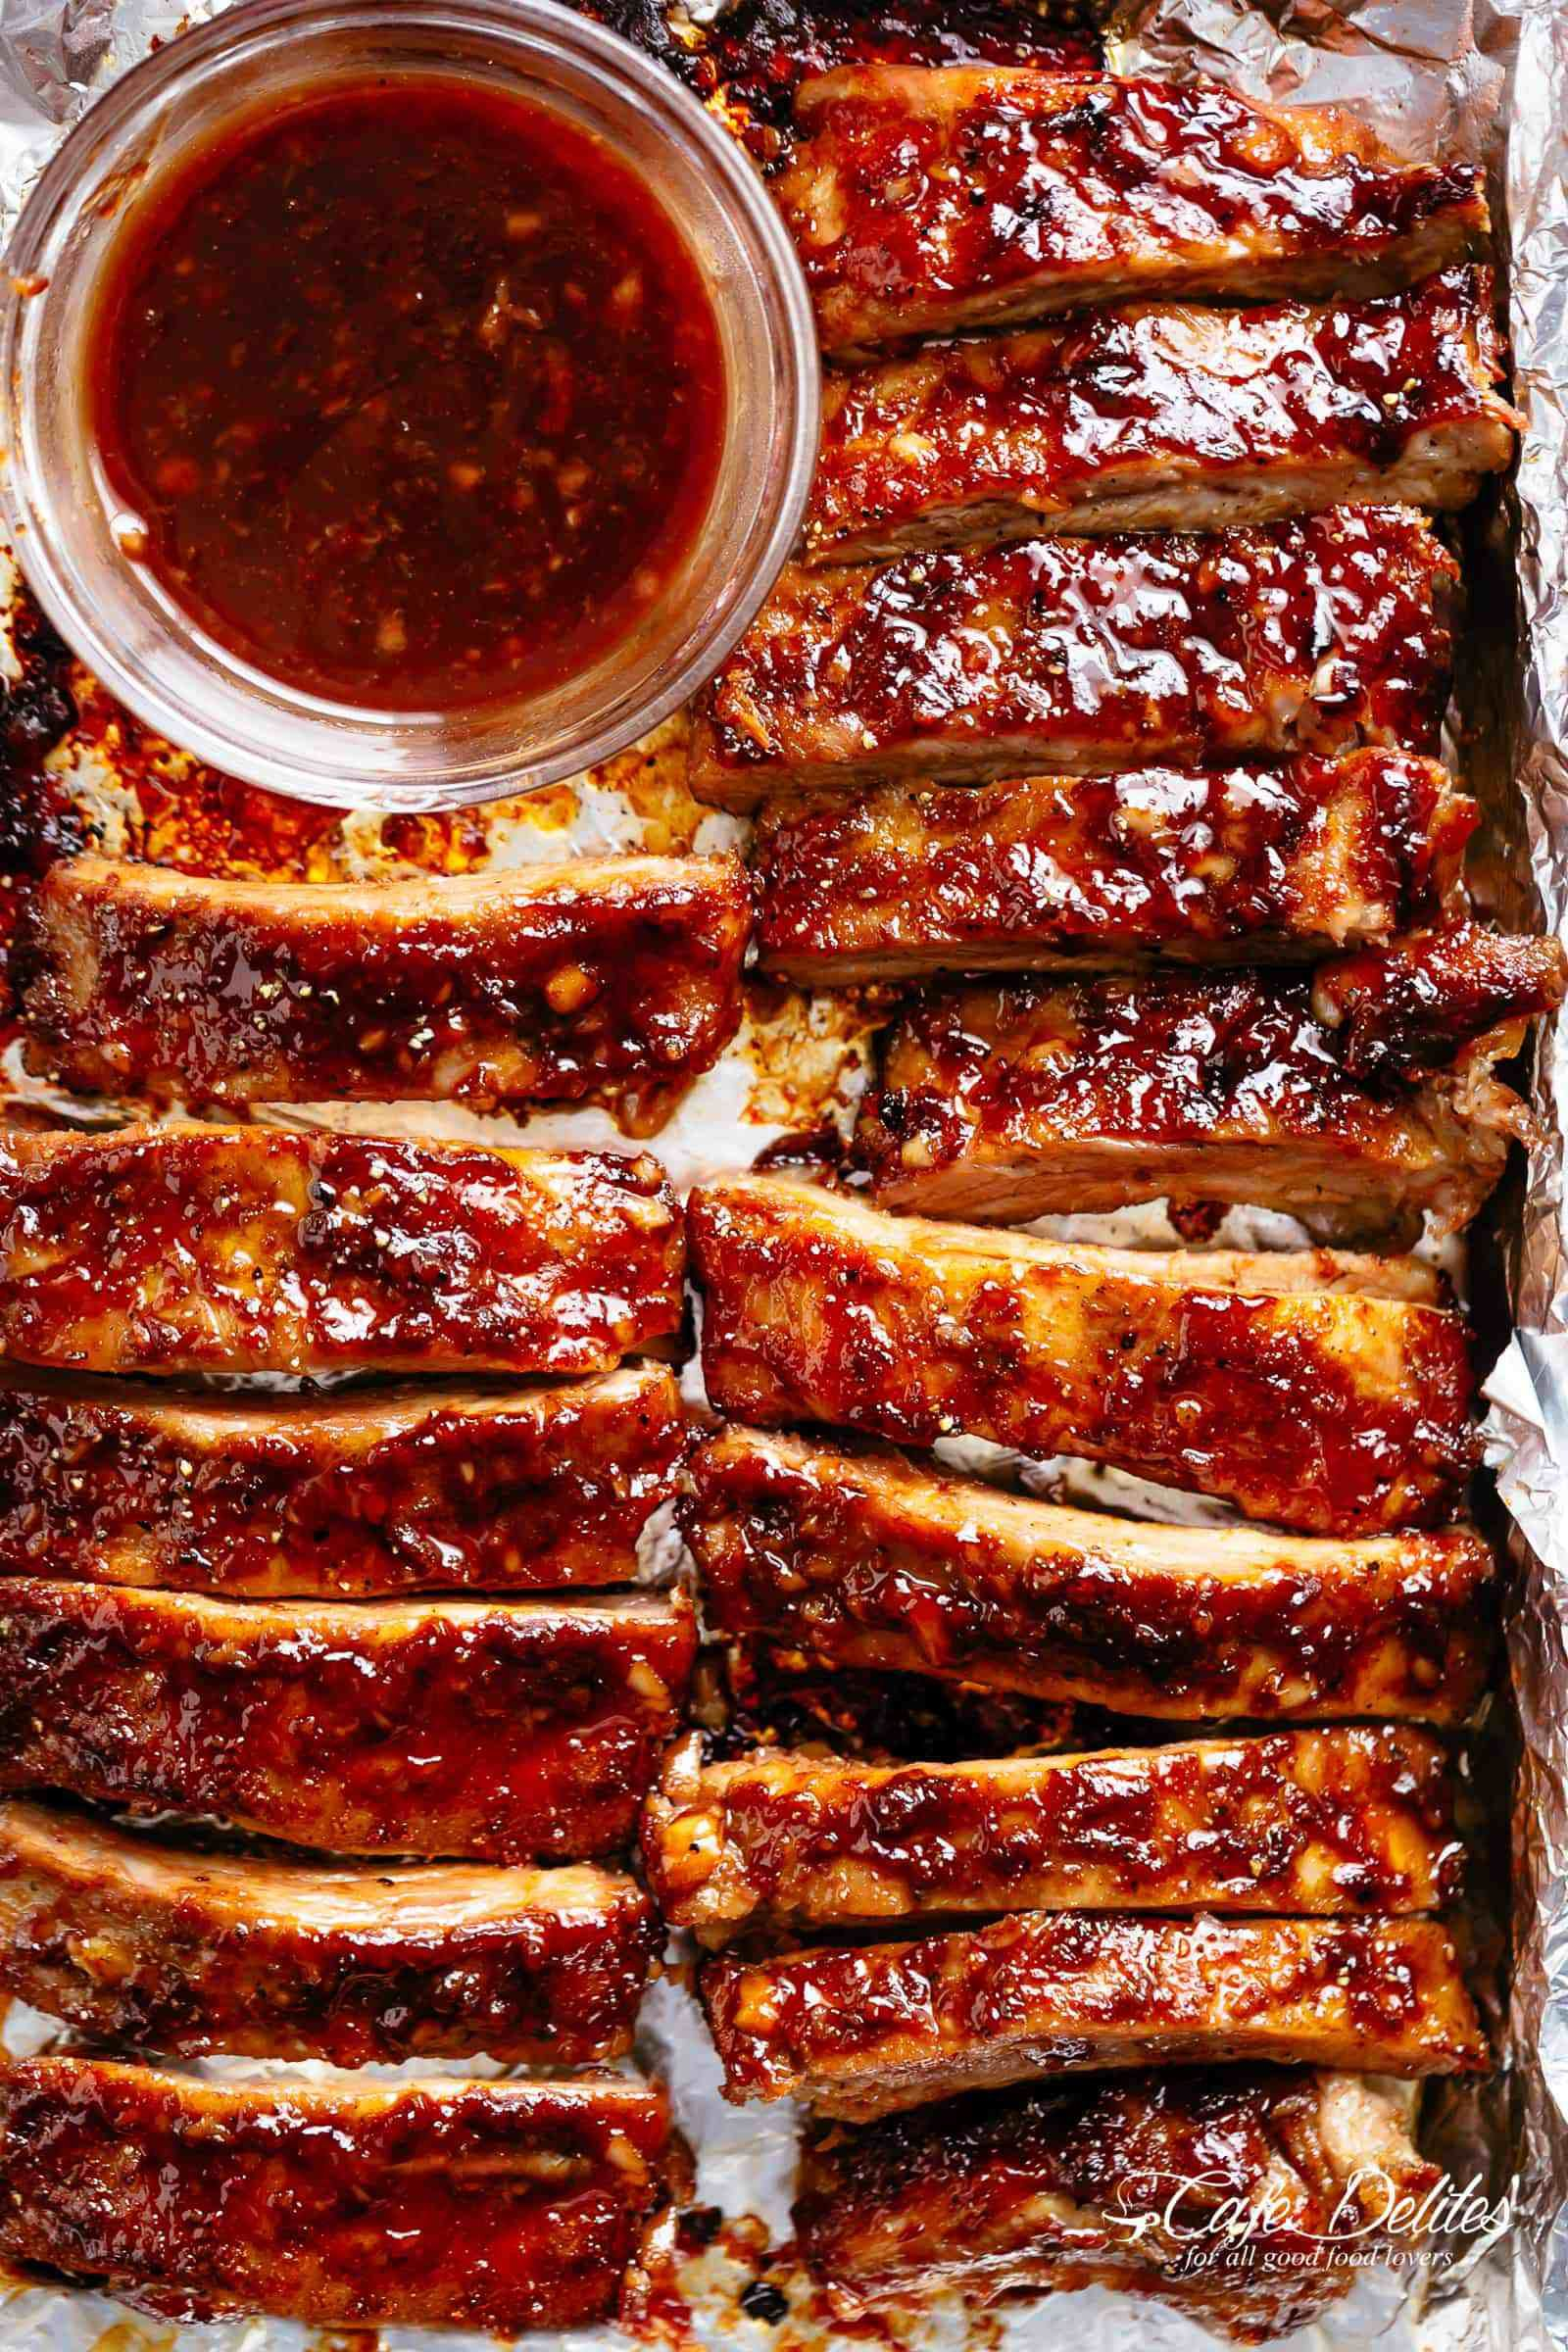 Oven Barbecue Ribs Ribs Oven |